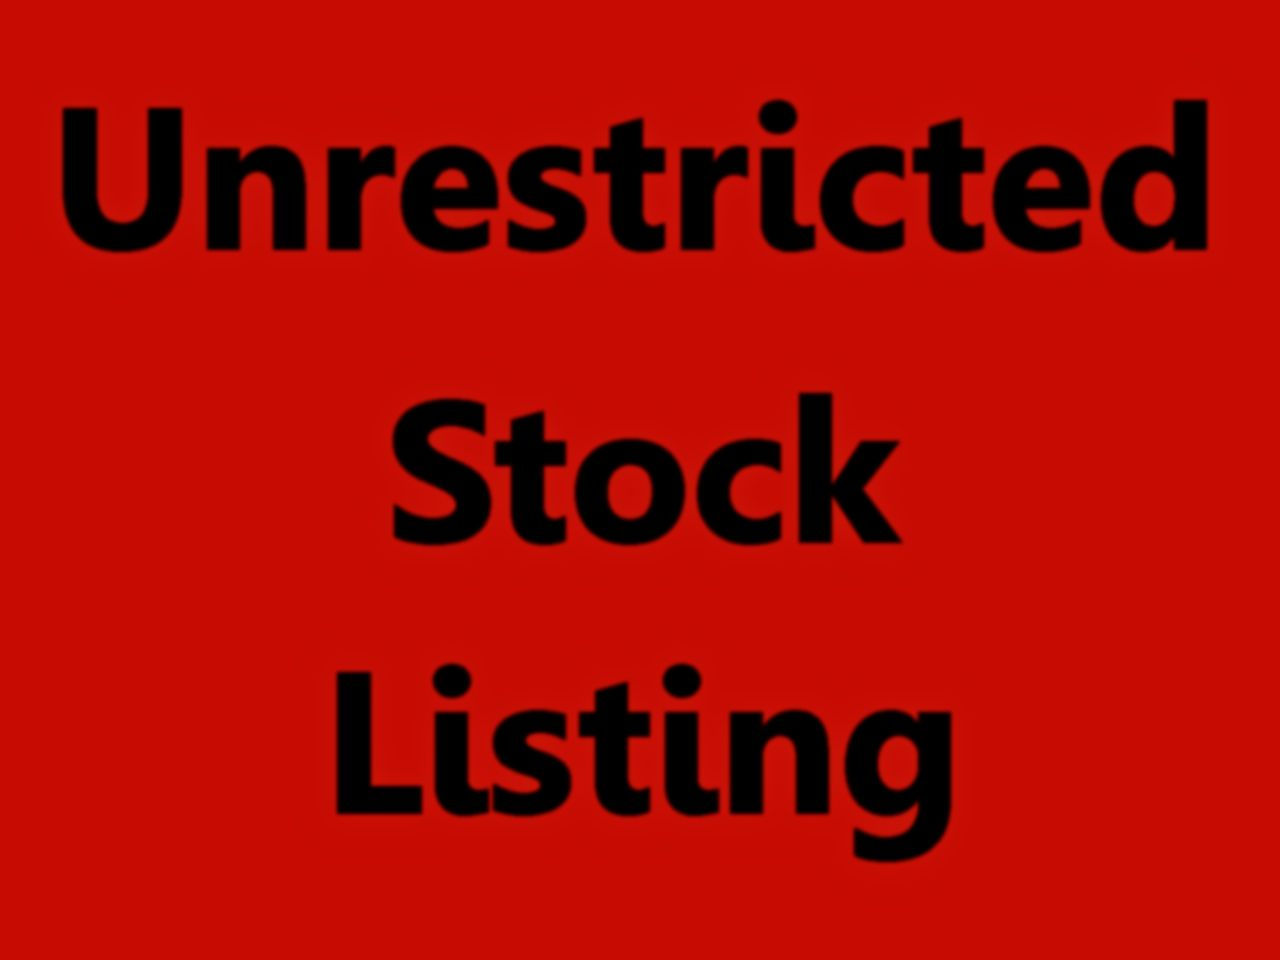 Unrestricted Stock Listing by FollowinTheBlackBird